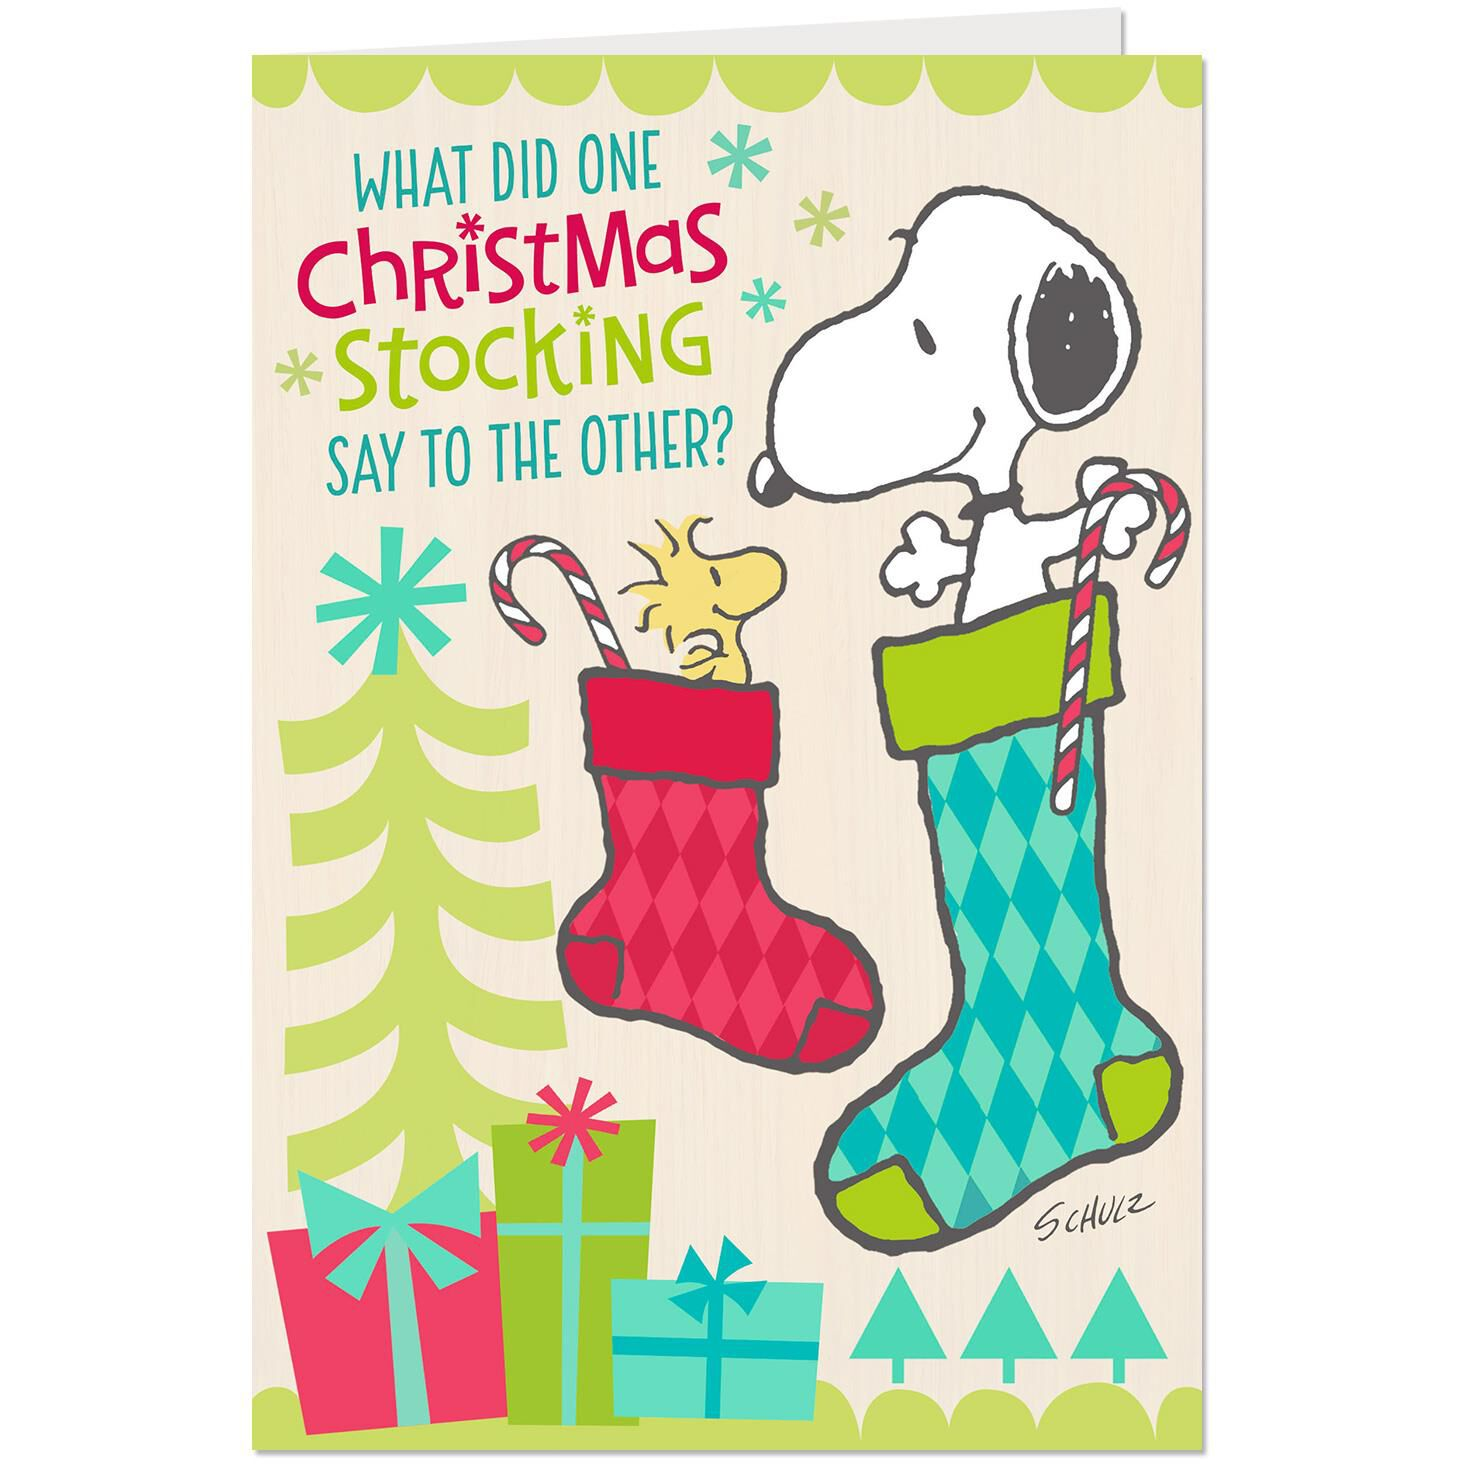 peanuts snoopy and woodstock stockings funny christmas card greeting cards hallmark - Snoopy Christmas Stocking